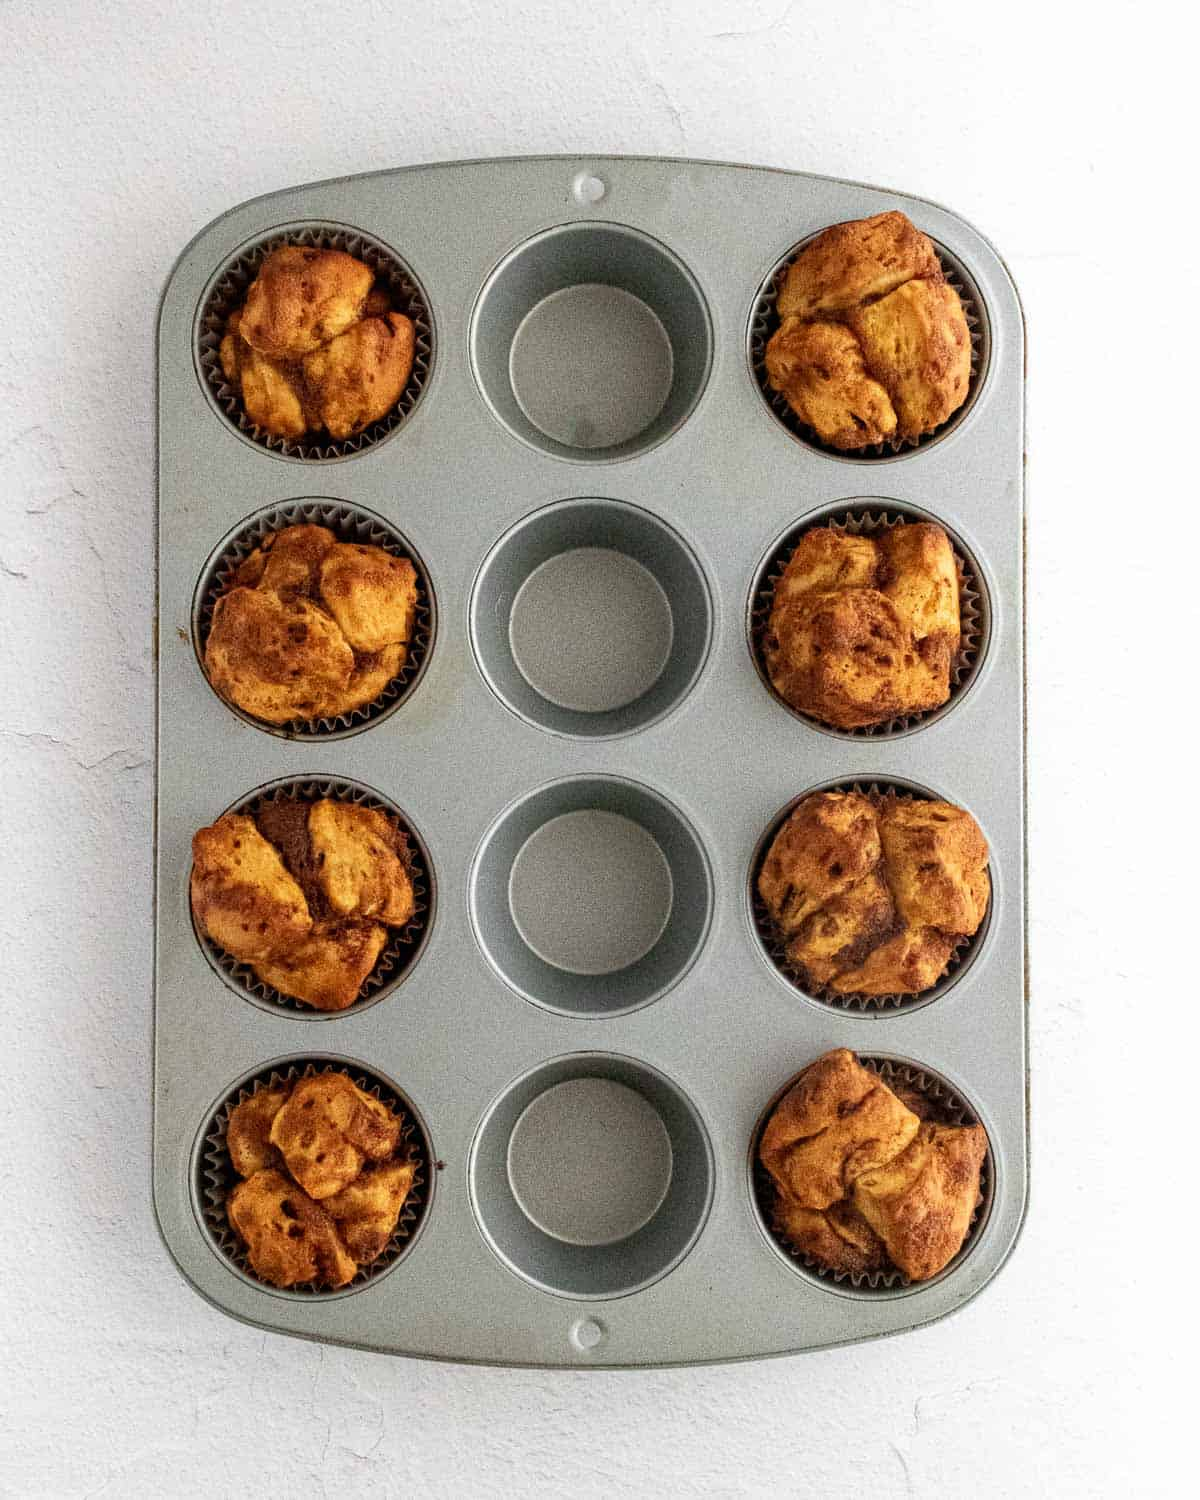 Monkey bread baked in a muffin pan.